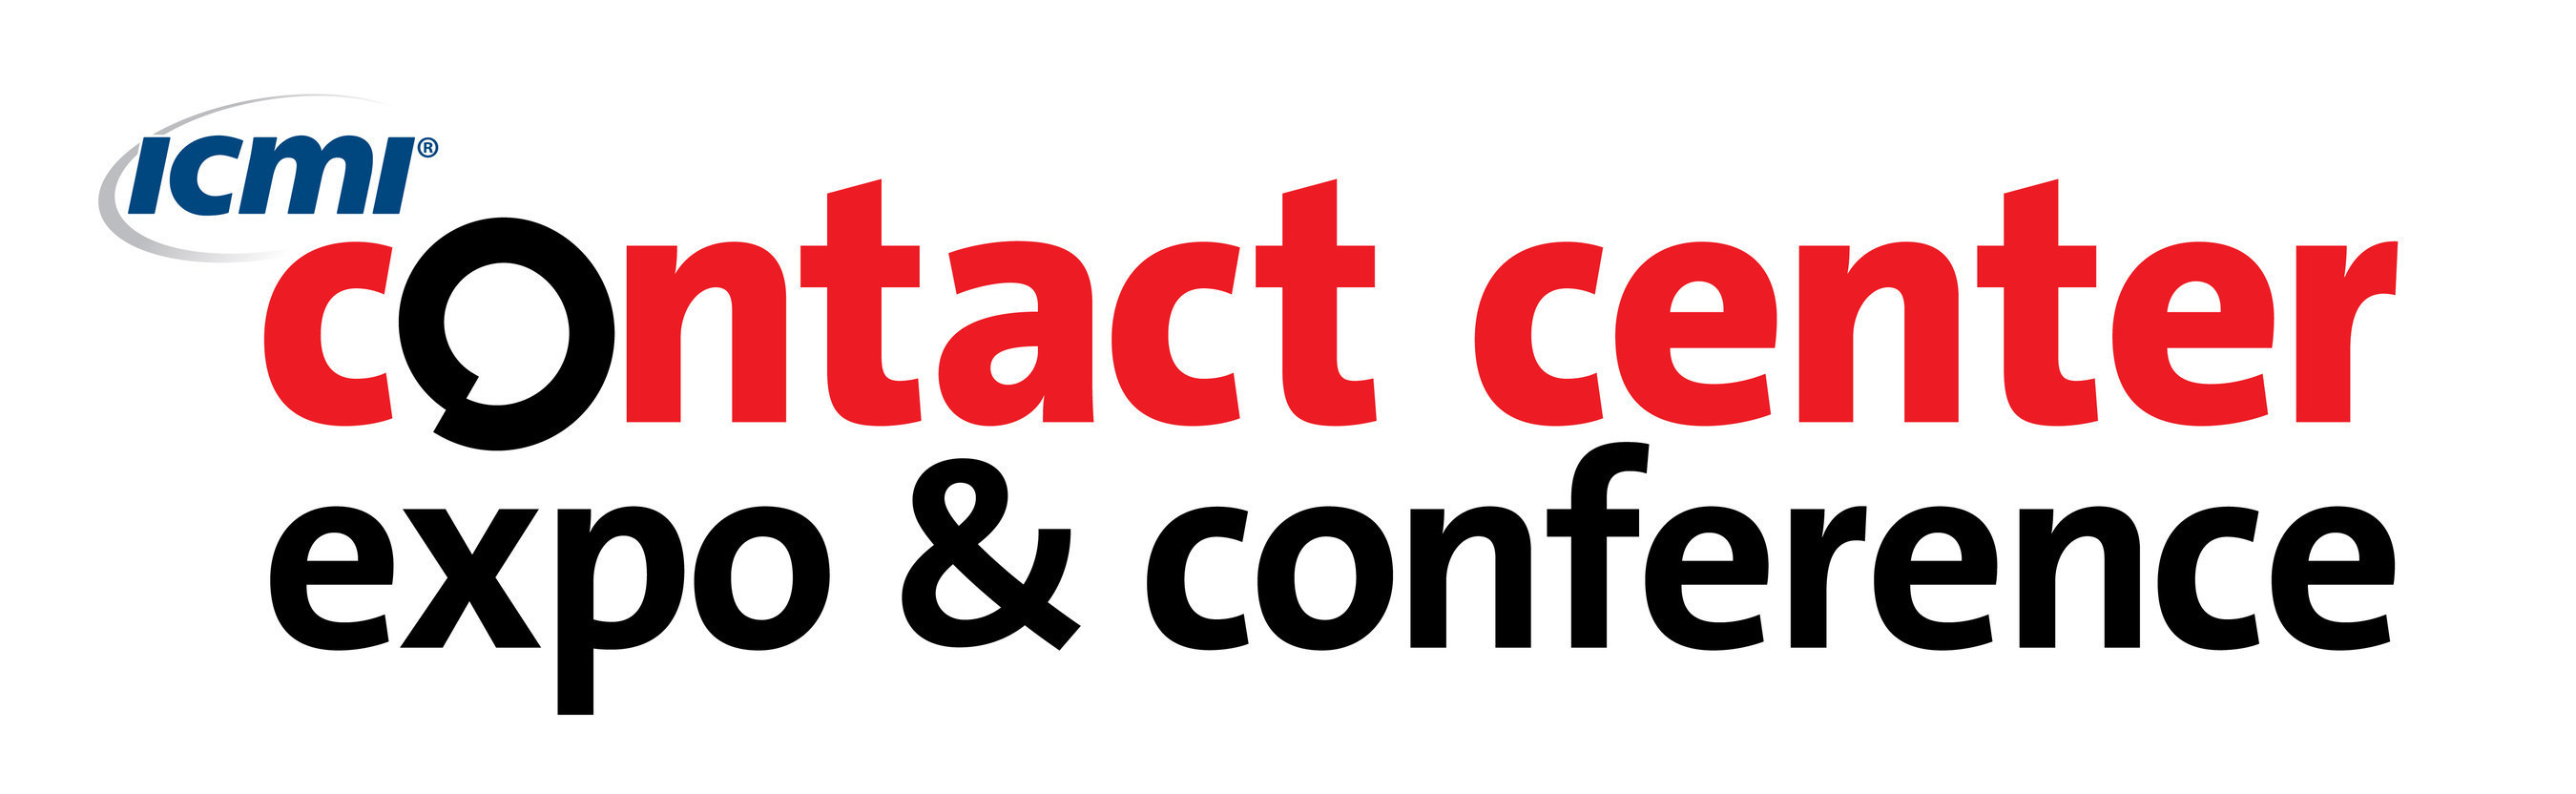 The 2015 Contact Center Expo & Conference will take place May 4-7 at the Walt Disney World Dolphin Resort in ...